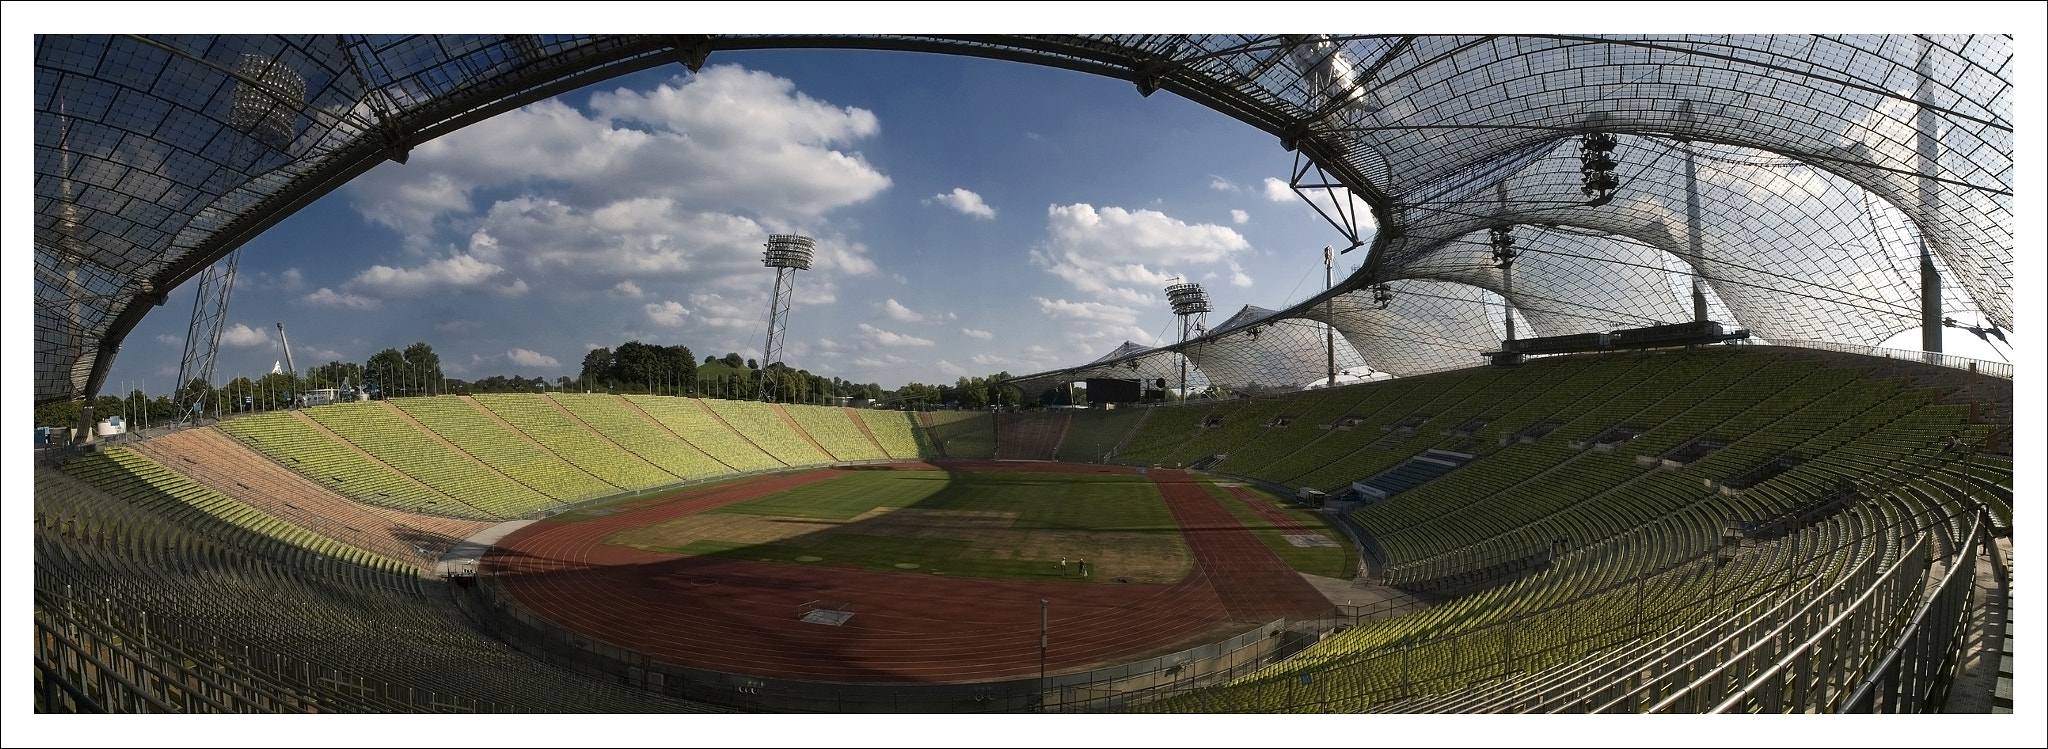 Photograph Olympiastadion München by Oscar Gomez on 500px